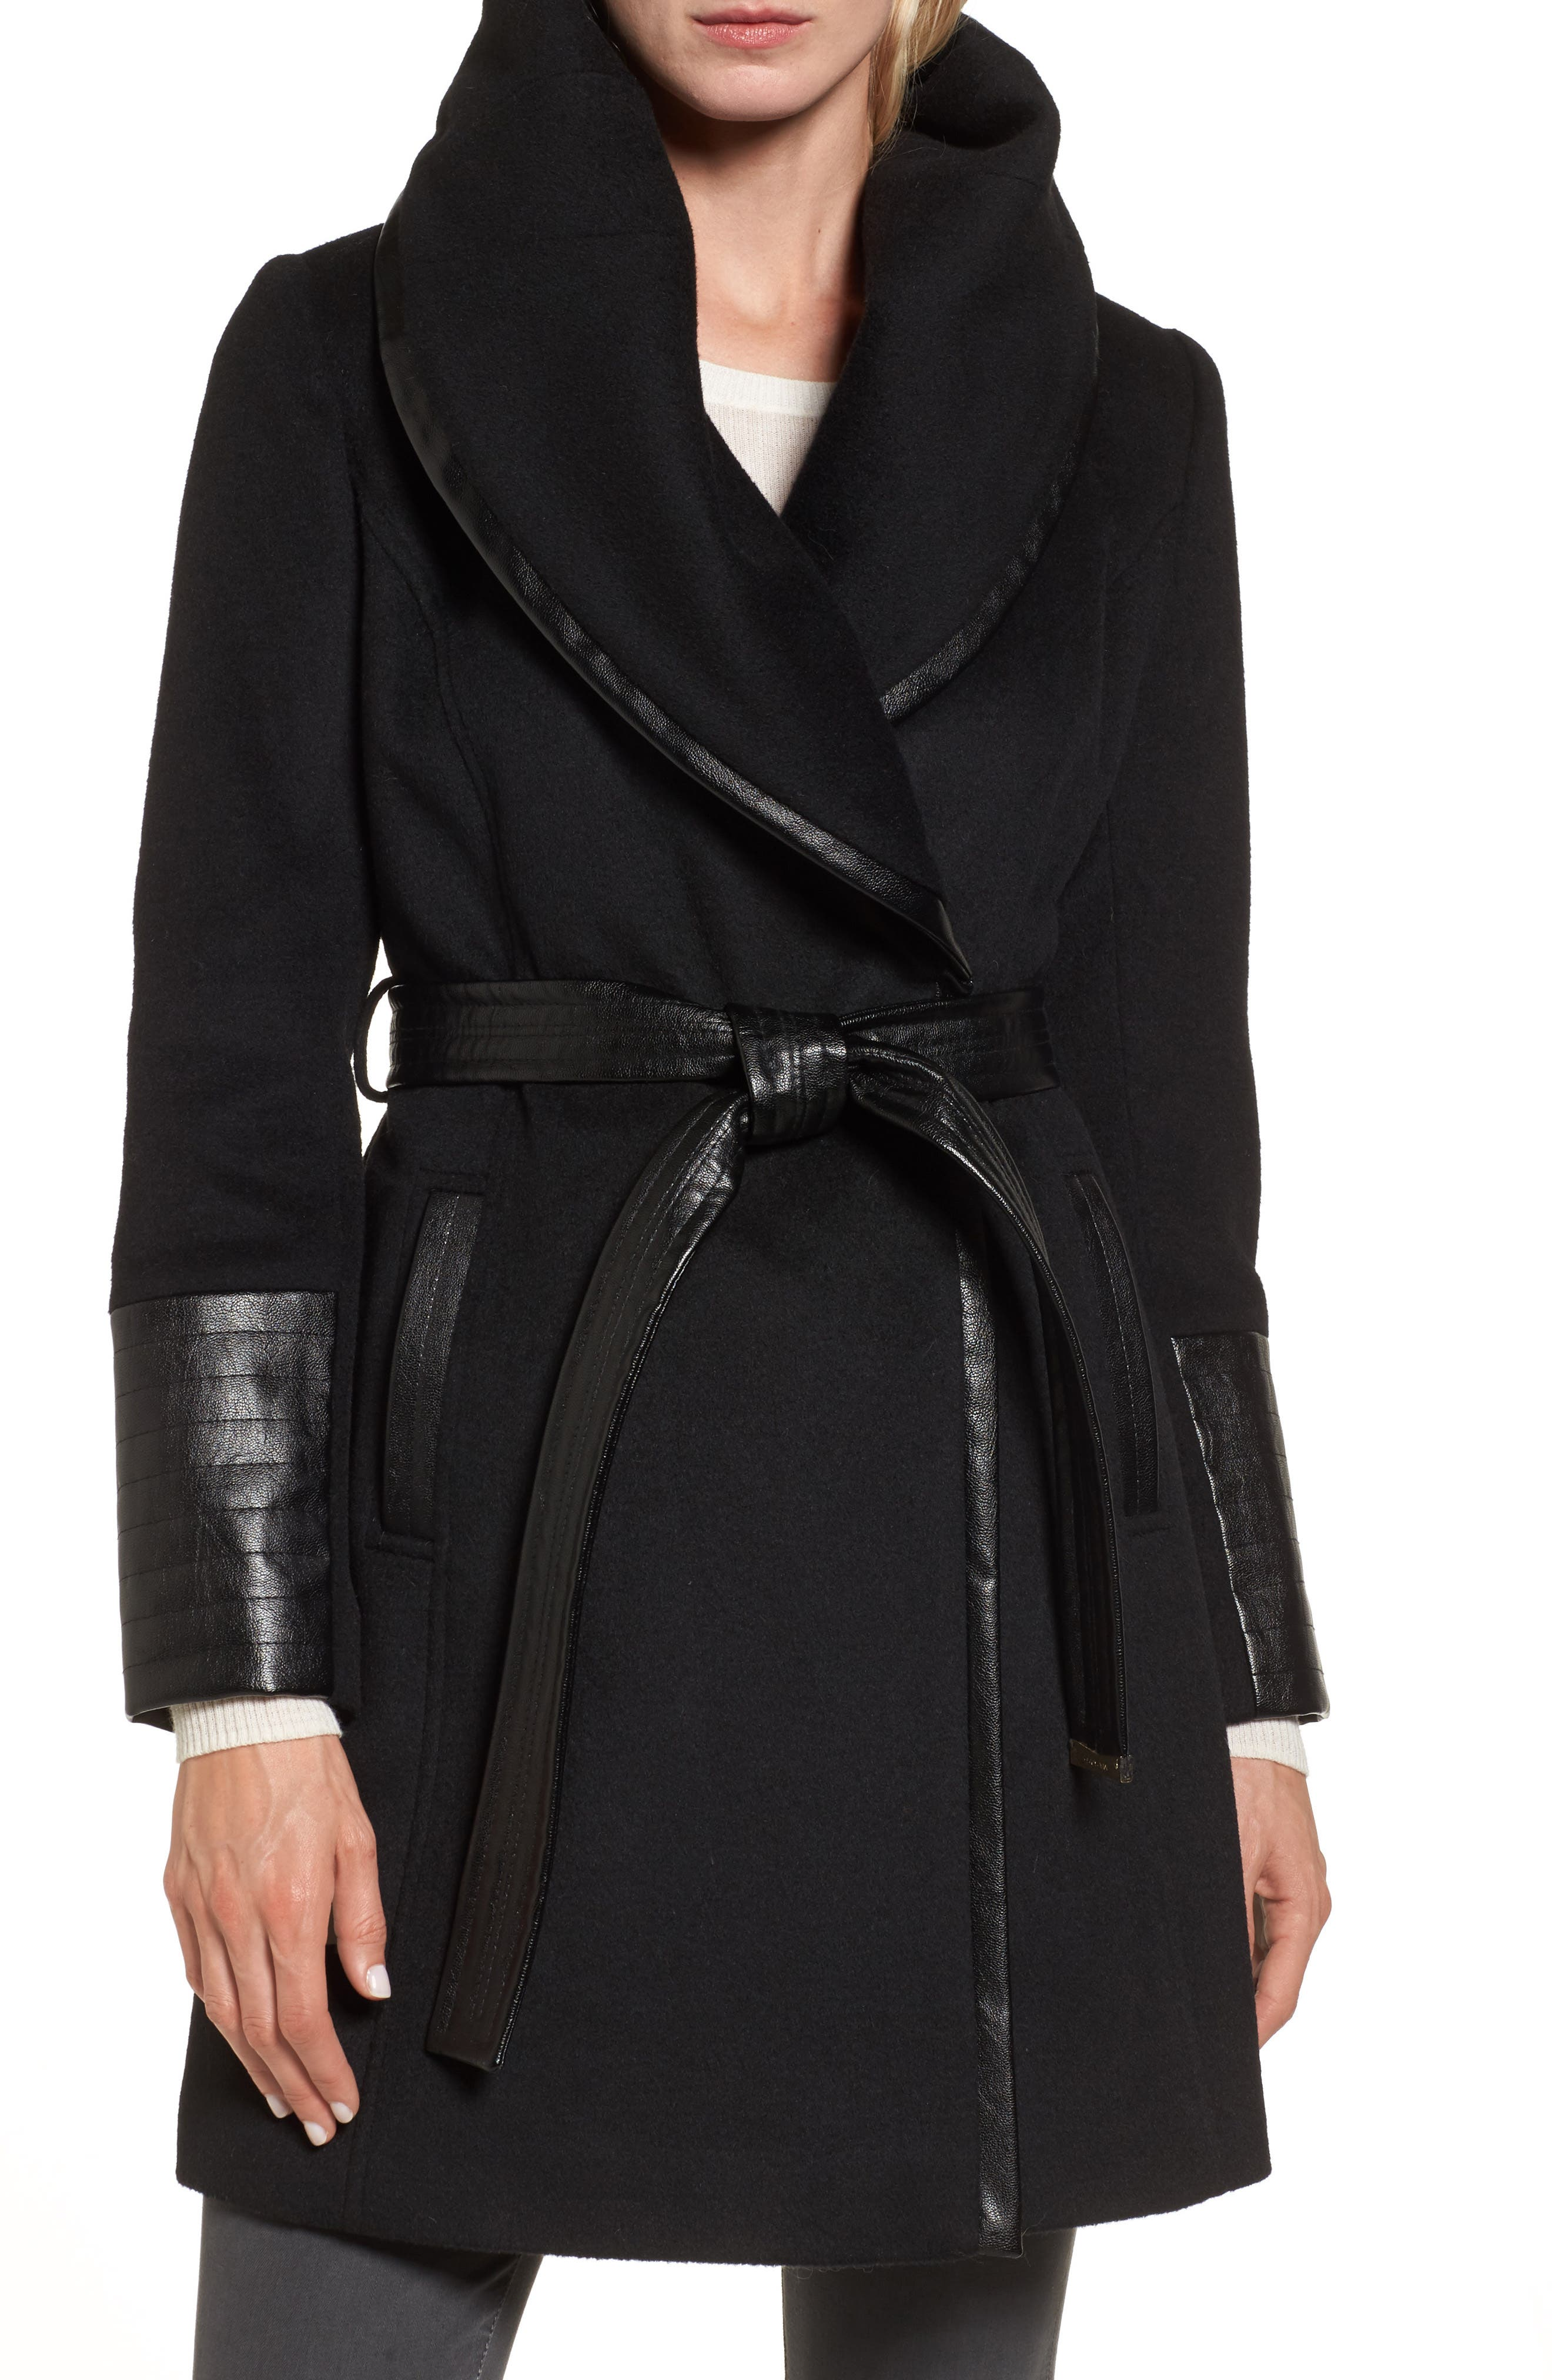 Wool Blend Coat,                             Main thumbnail 1, color,                             Black